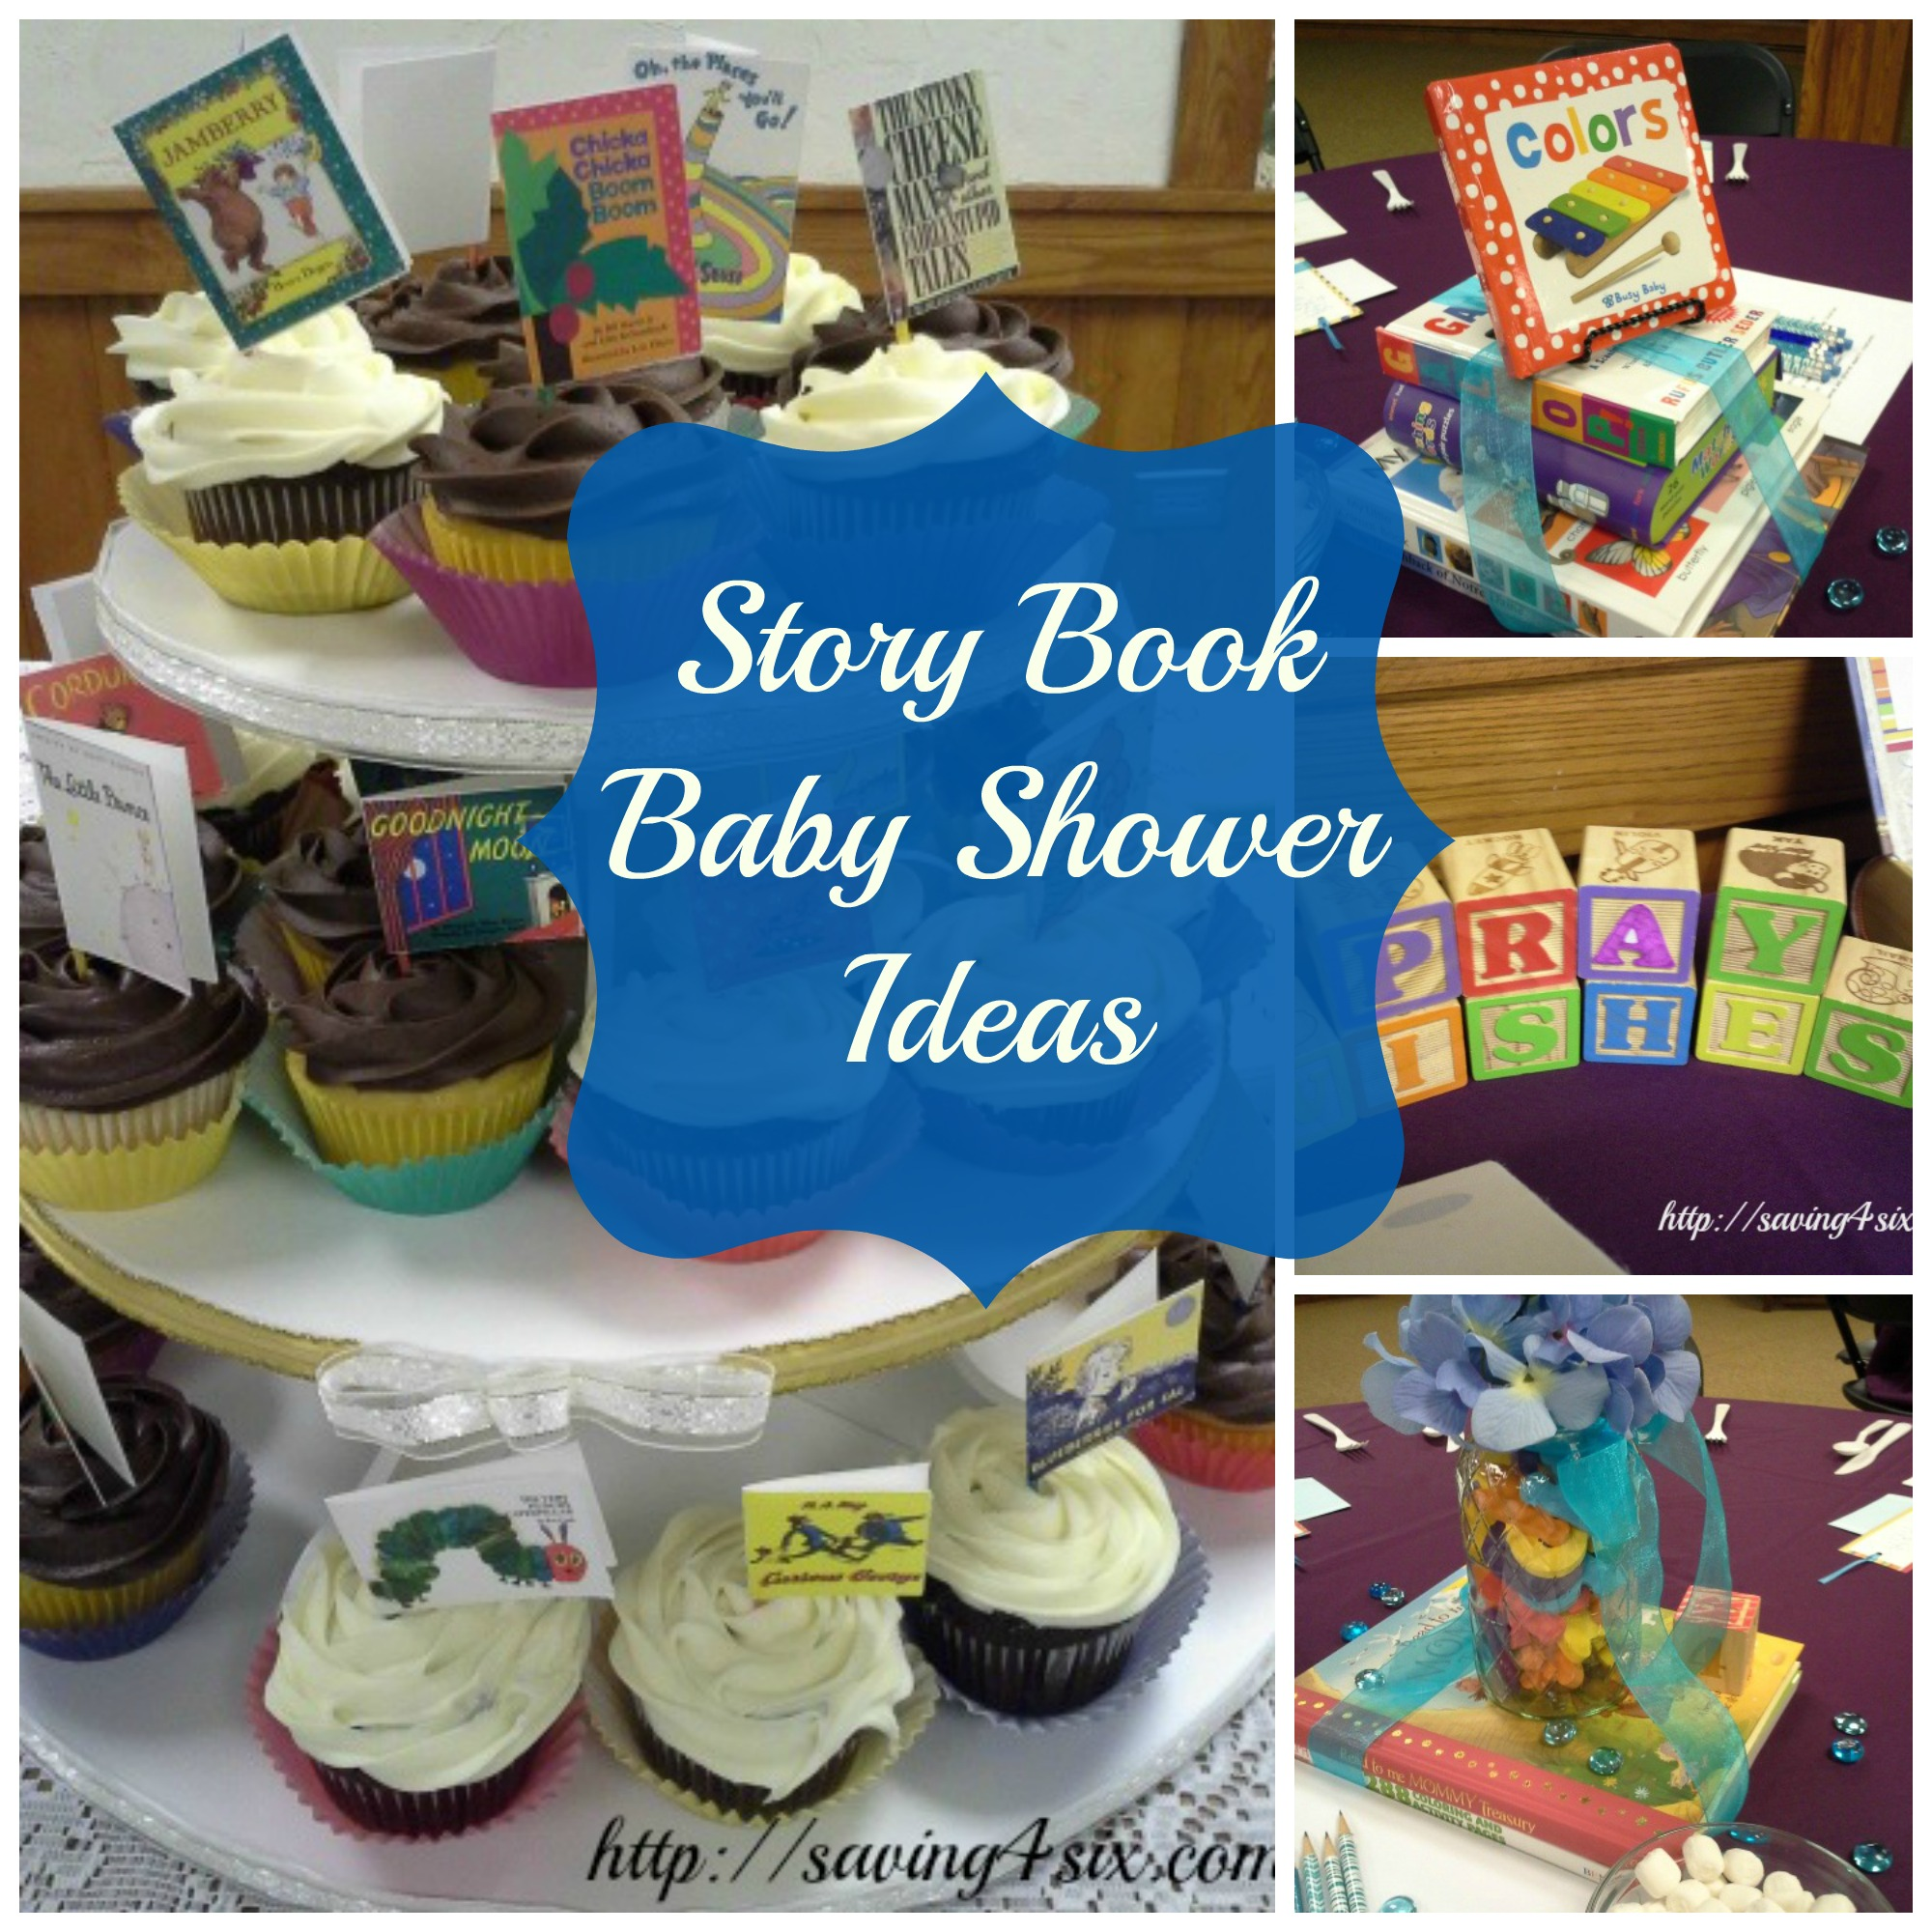 StoryBook Baby Shower Ideas